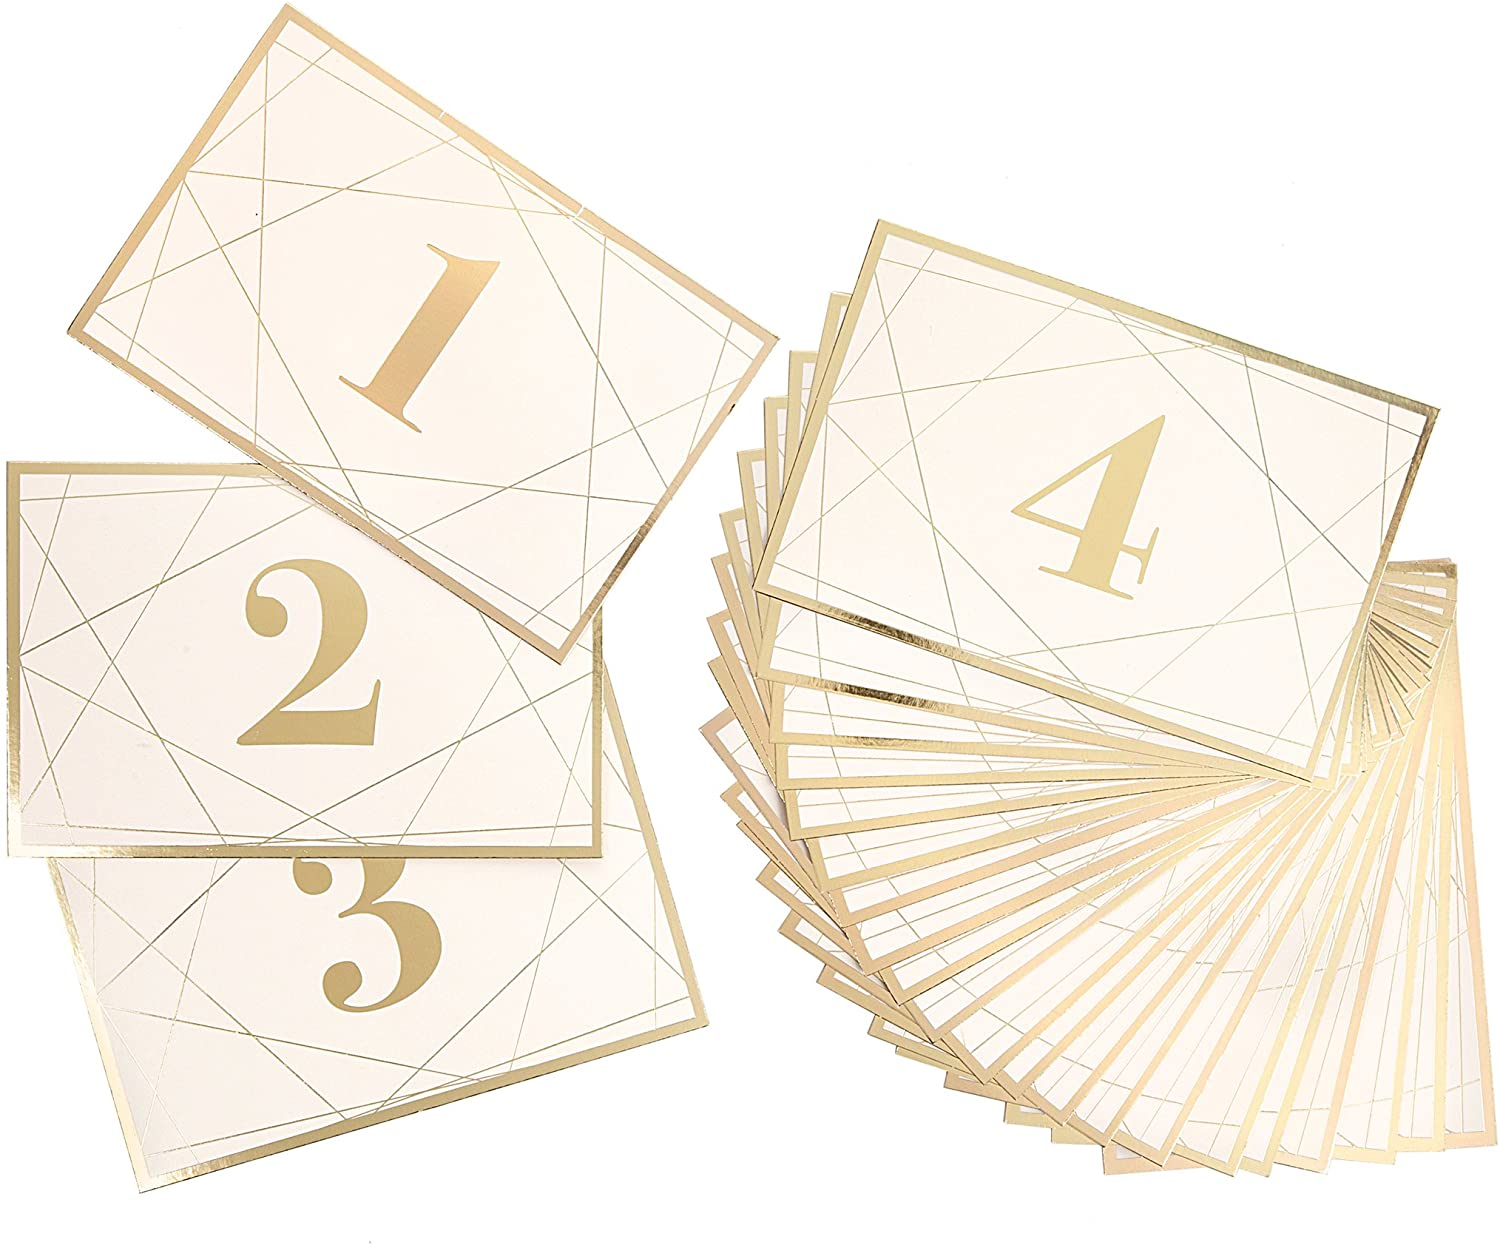 Darice David Tutera Modern Geometric Gold Foil Table Number Cards, 25 Piece